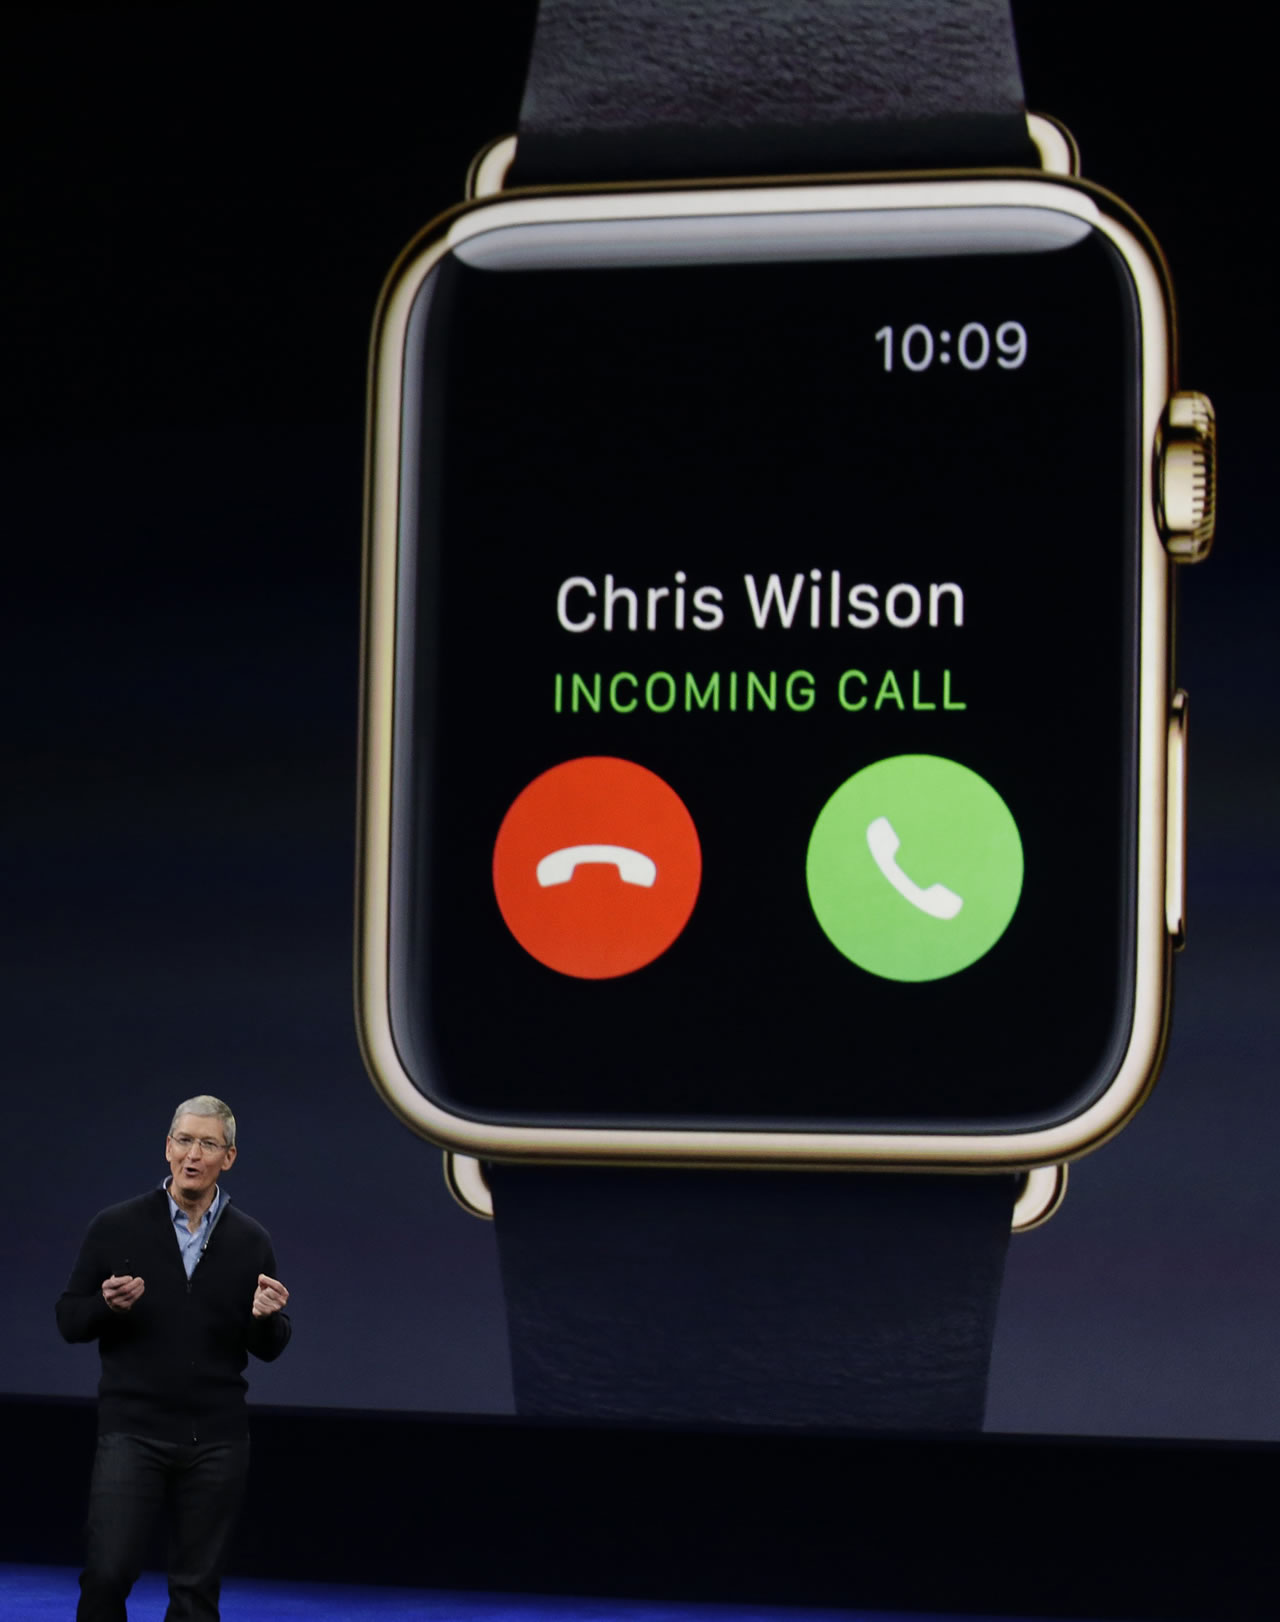 "<div class=""meta image-caption""><div class=""origin-logo origin-image kgo""><span>KGO</span></div><span class=""caption-text"">Apple CEO Tim Cook explains the features of the new Apple Watch during an Apple event on Monday, March 9, 2015, in San Francisco. (AP Photo/Eric Risberg)</span></div>"